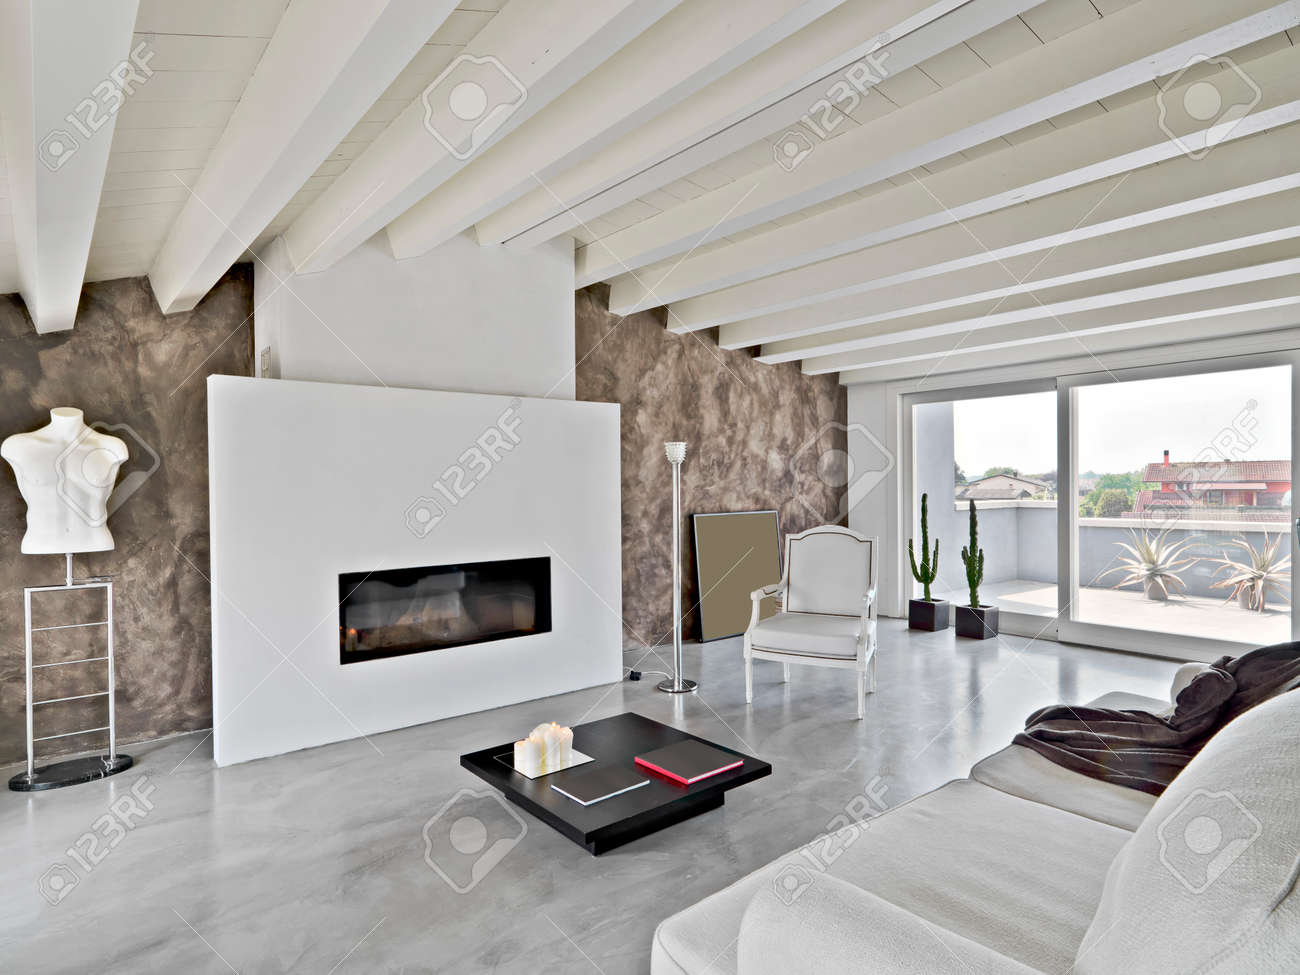 modern living room in the attic with wood ceiling Standard-Bild - 25856010